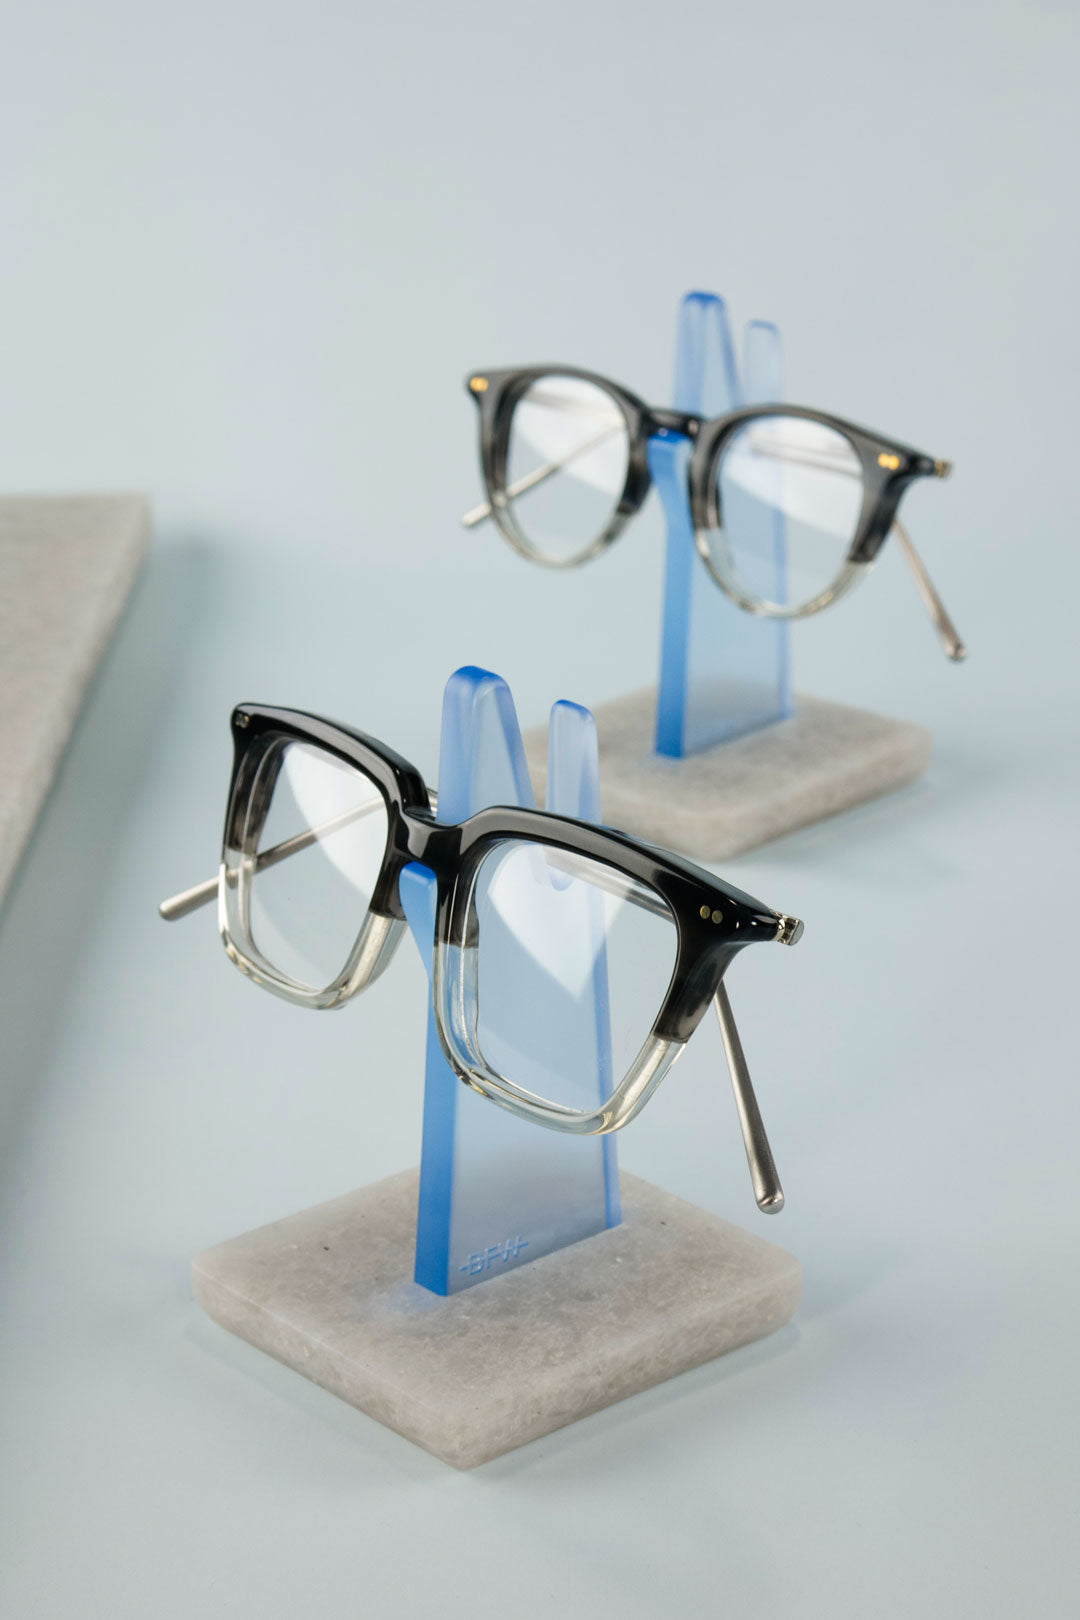 Two tone glasses frames resting on blue eyeglass holders